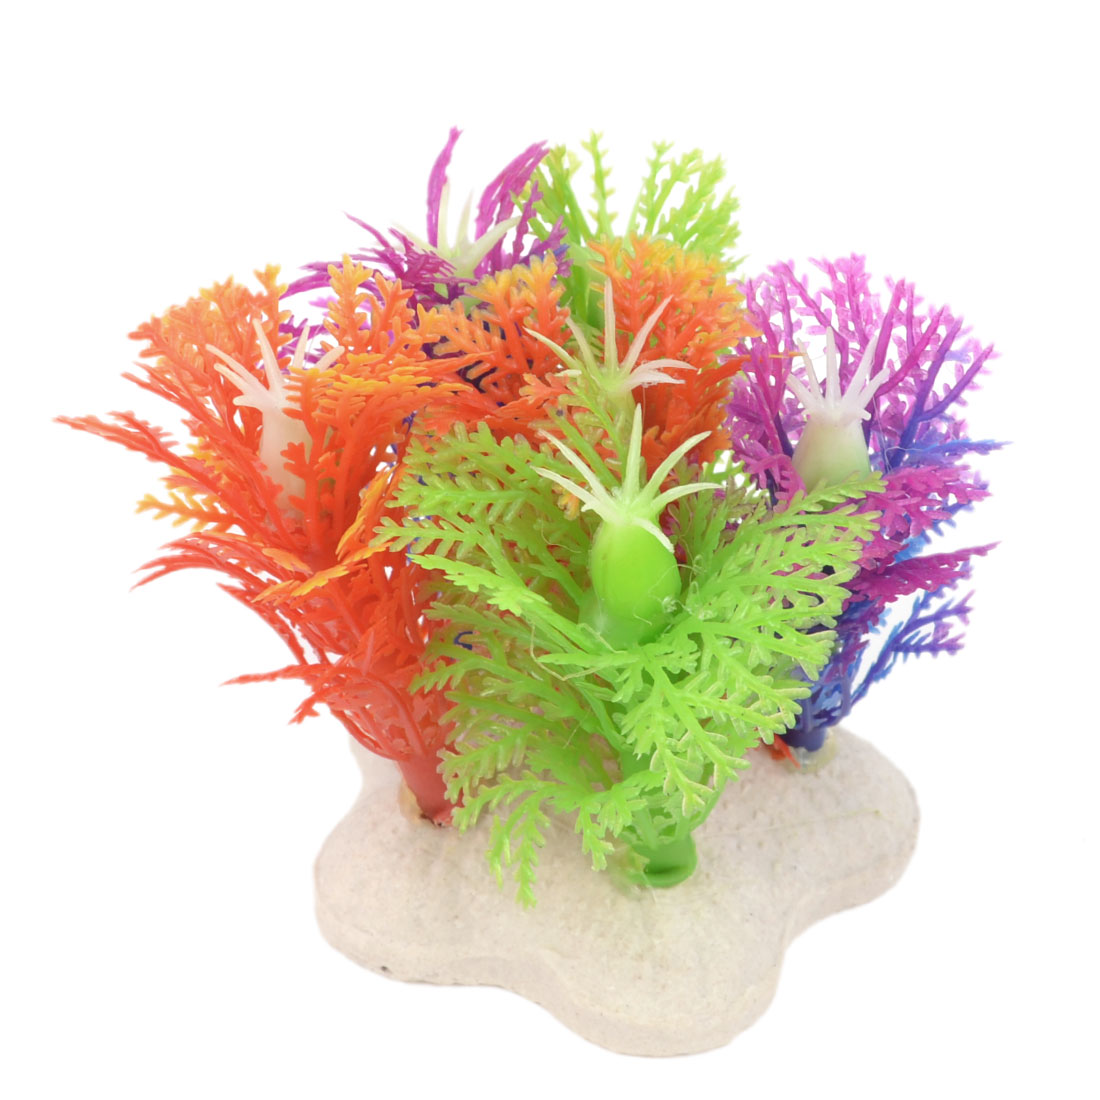 "Aquarium Colorful Plastic Small Aquatic Plant Ornament 2"" High"